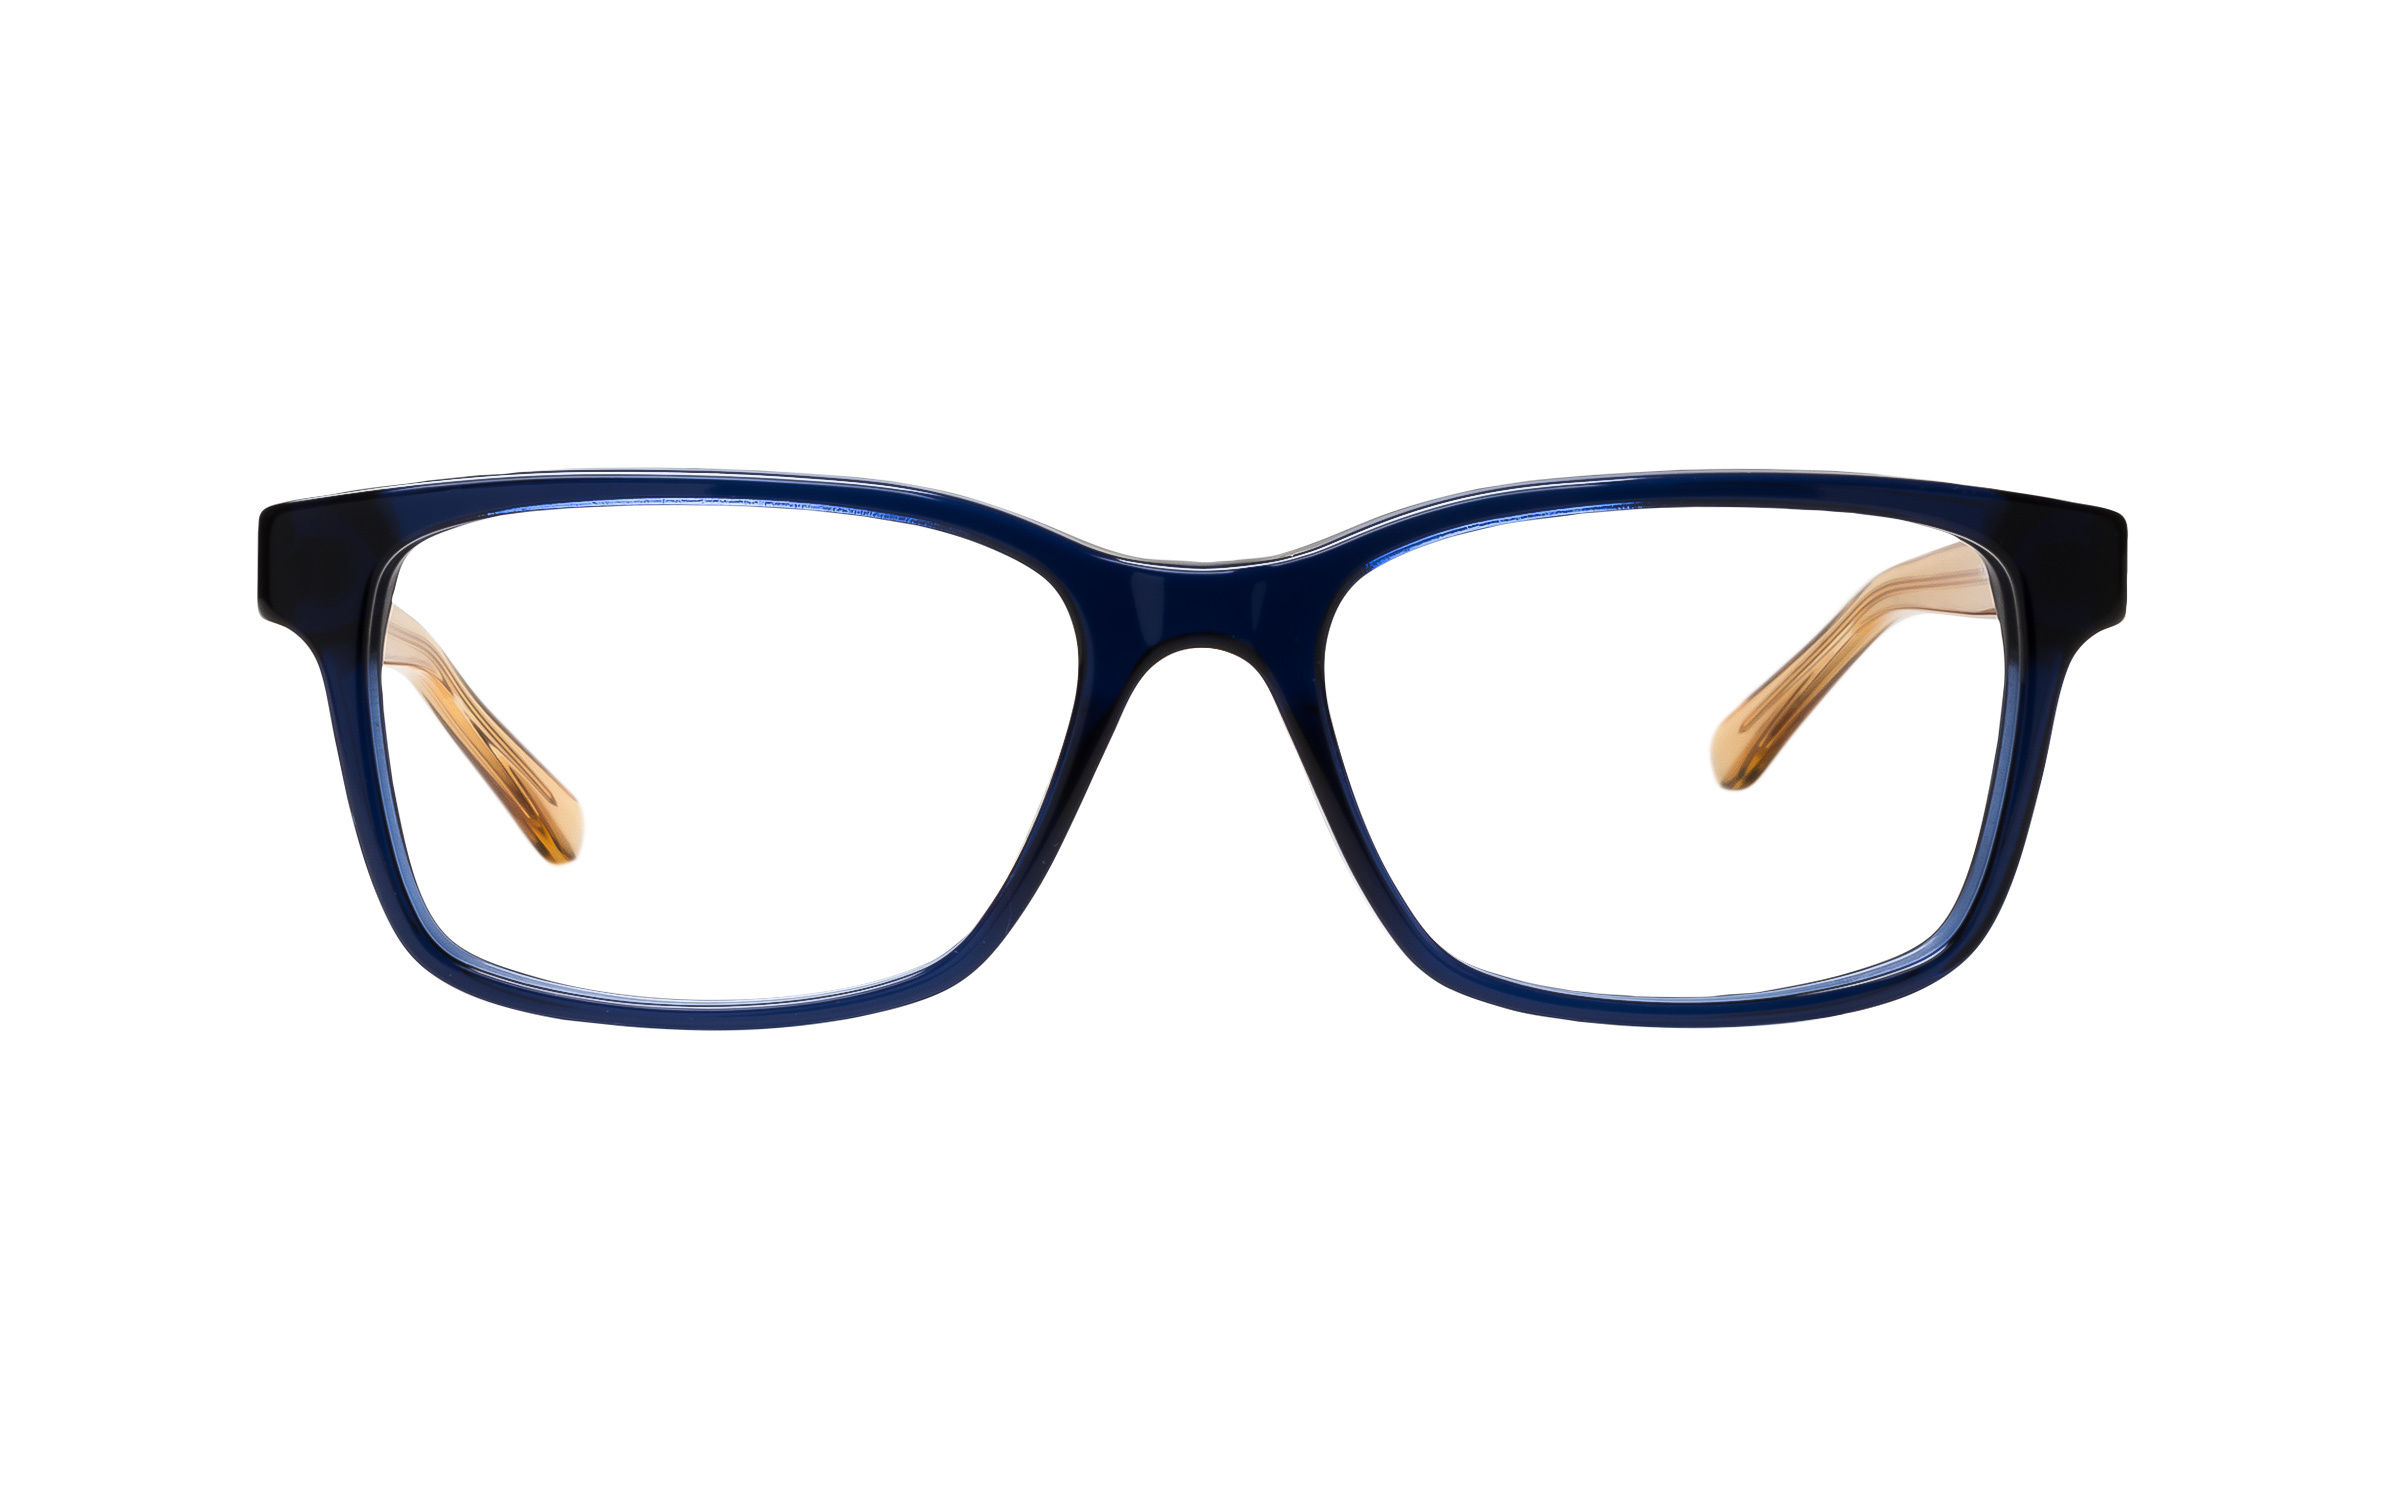 Tory Burch TY2064 1562 Pinot (52) Eyeglasses and Frame in Navy Blue/Yellow/Clear Blue - Online Coastal